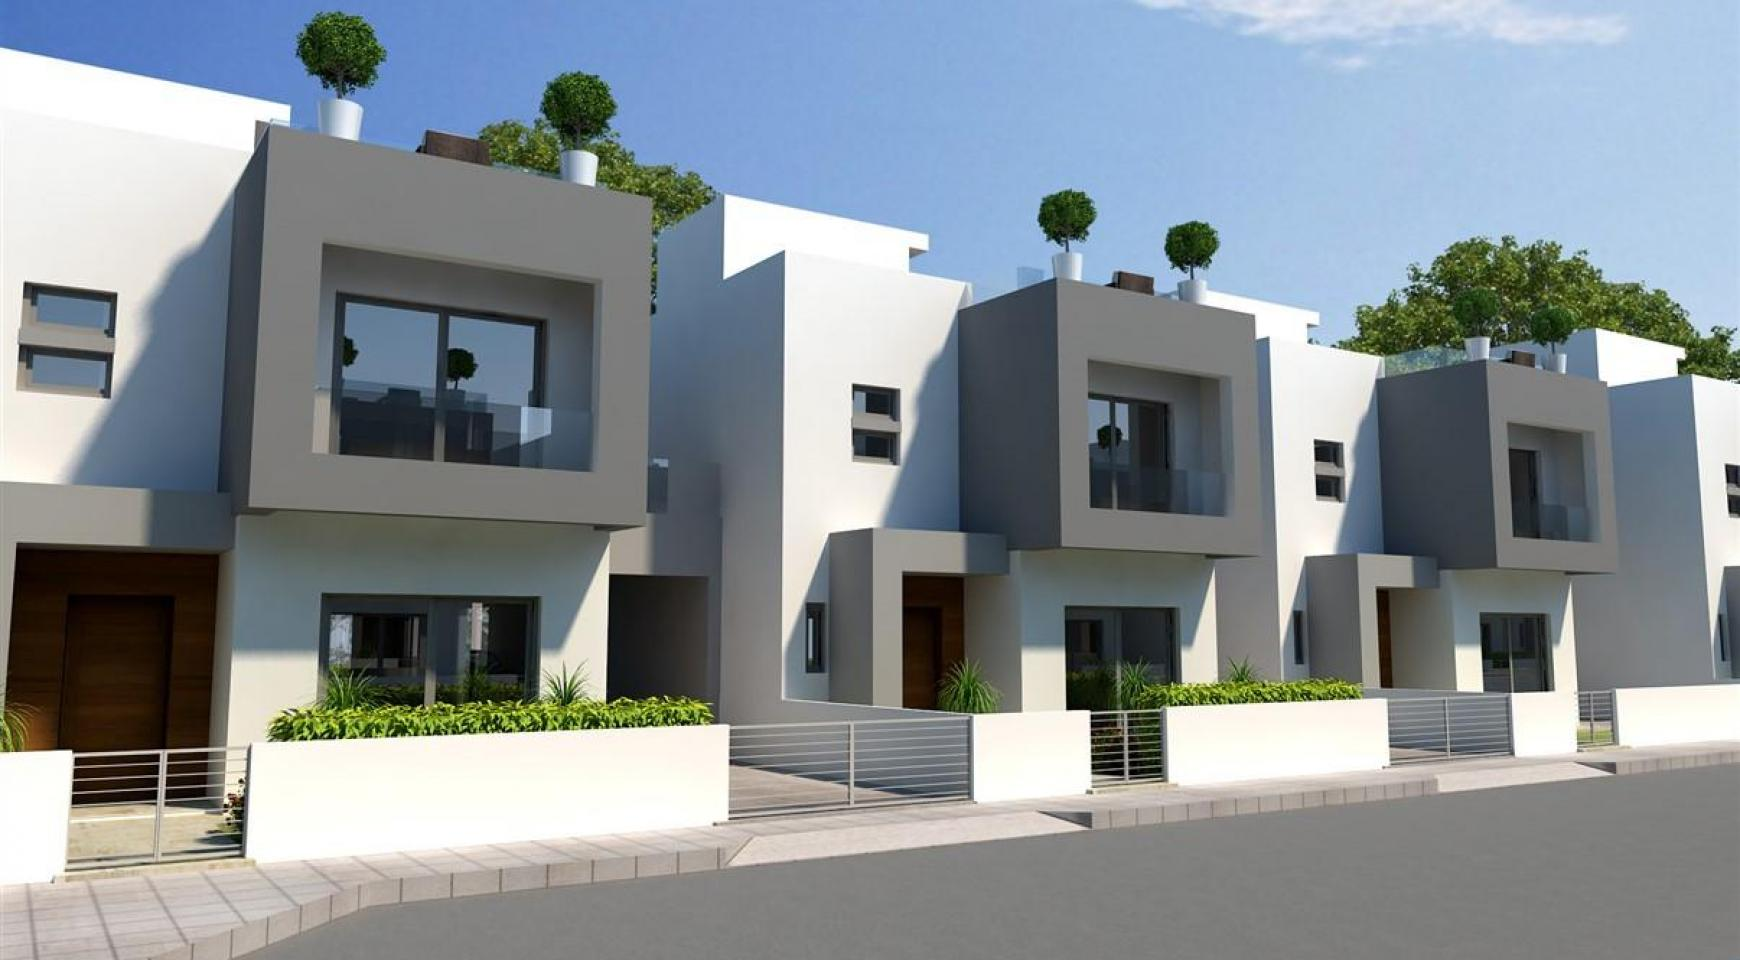 3 Bedroom Villa in New Project in Paphos - 36